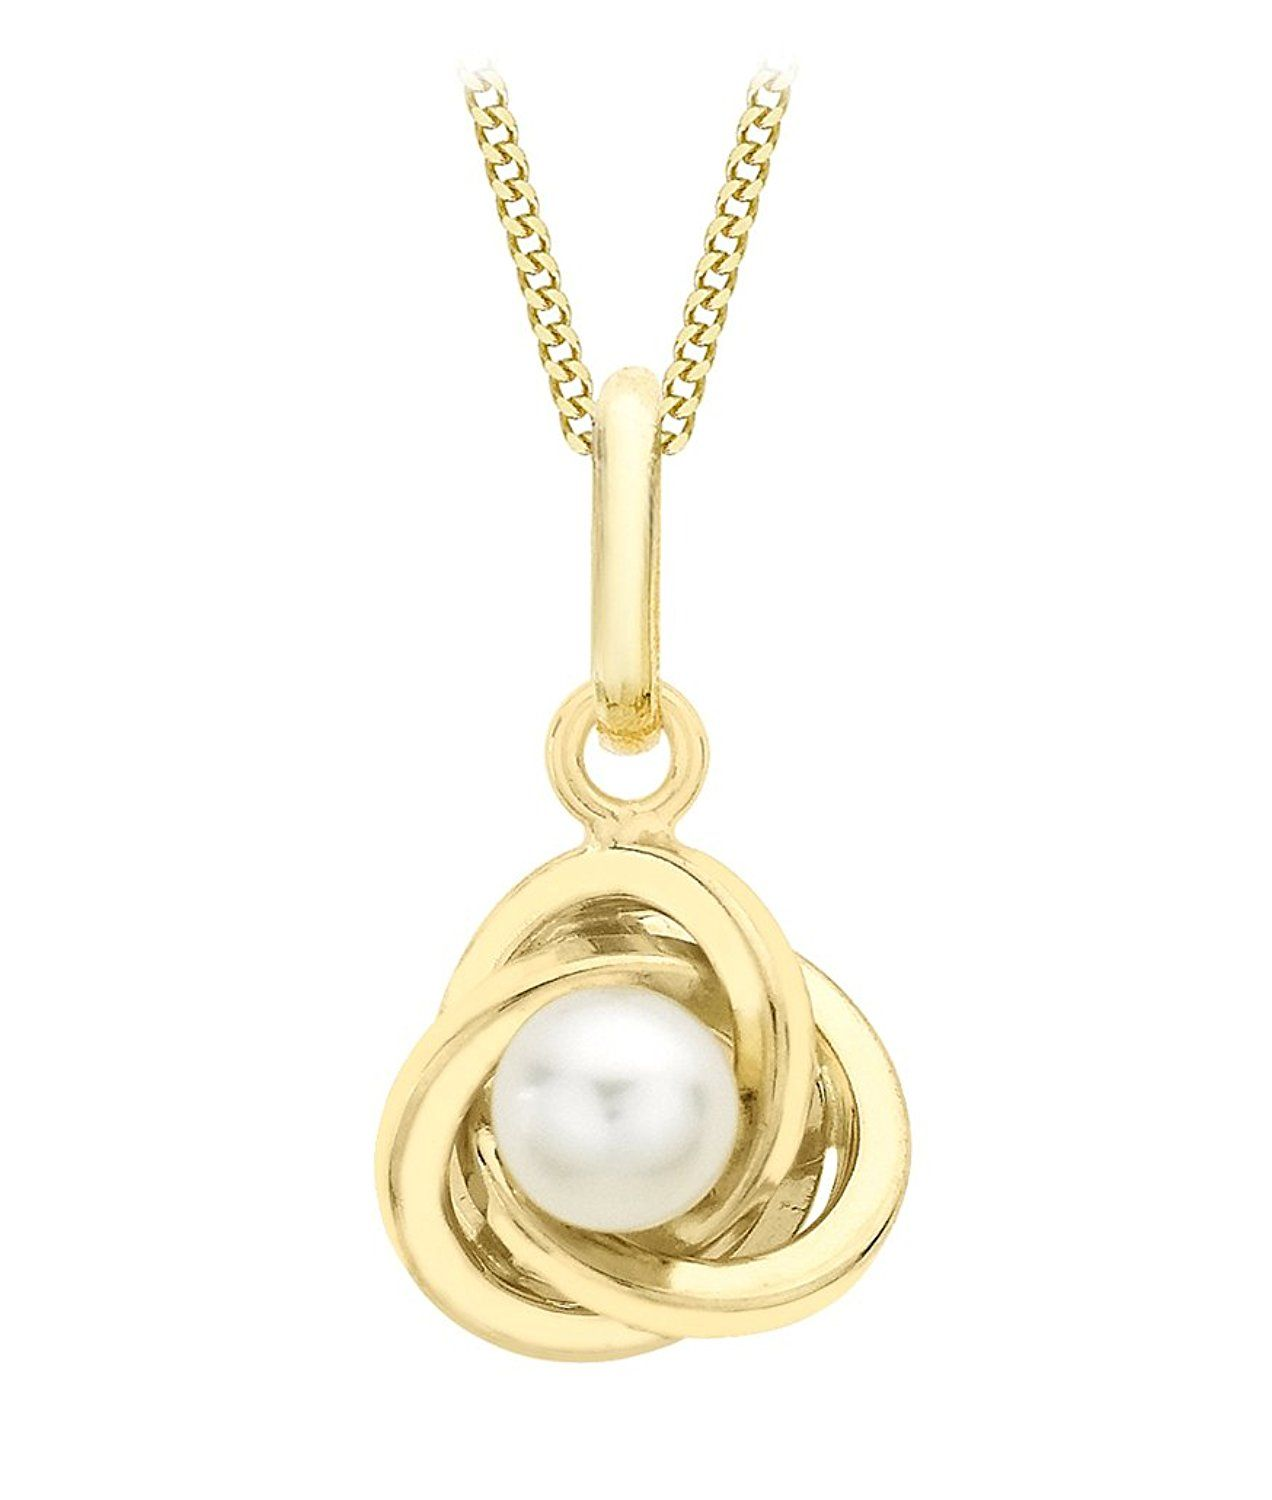 Carissima Gold Women's 9 ct Yellow Gold Diamond Cut Oval Locket Pendant on Curb Chain Necklace of Length 46 cm M0rAP7b1c9